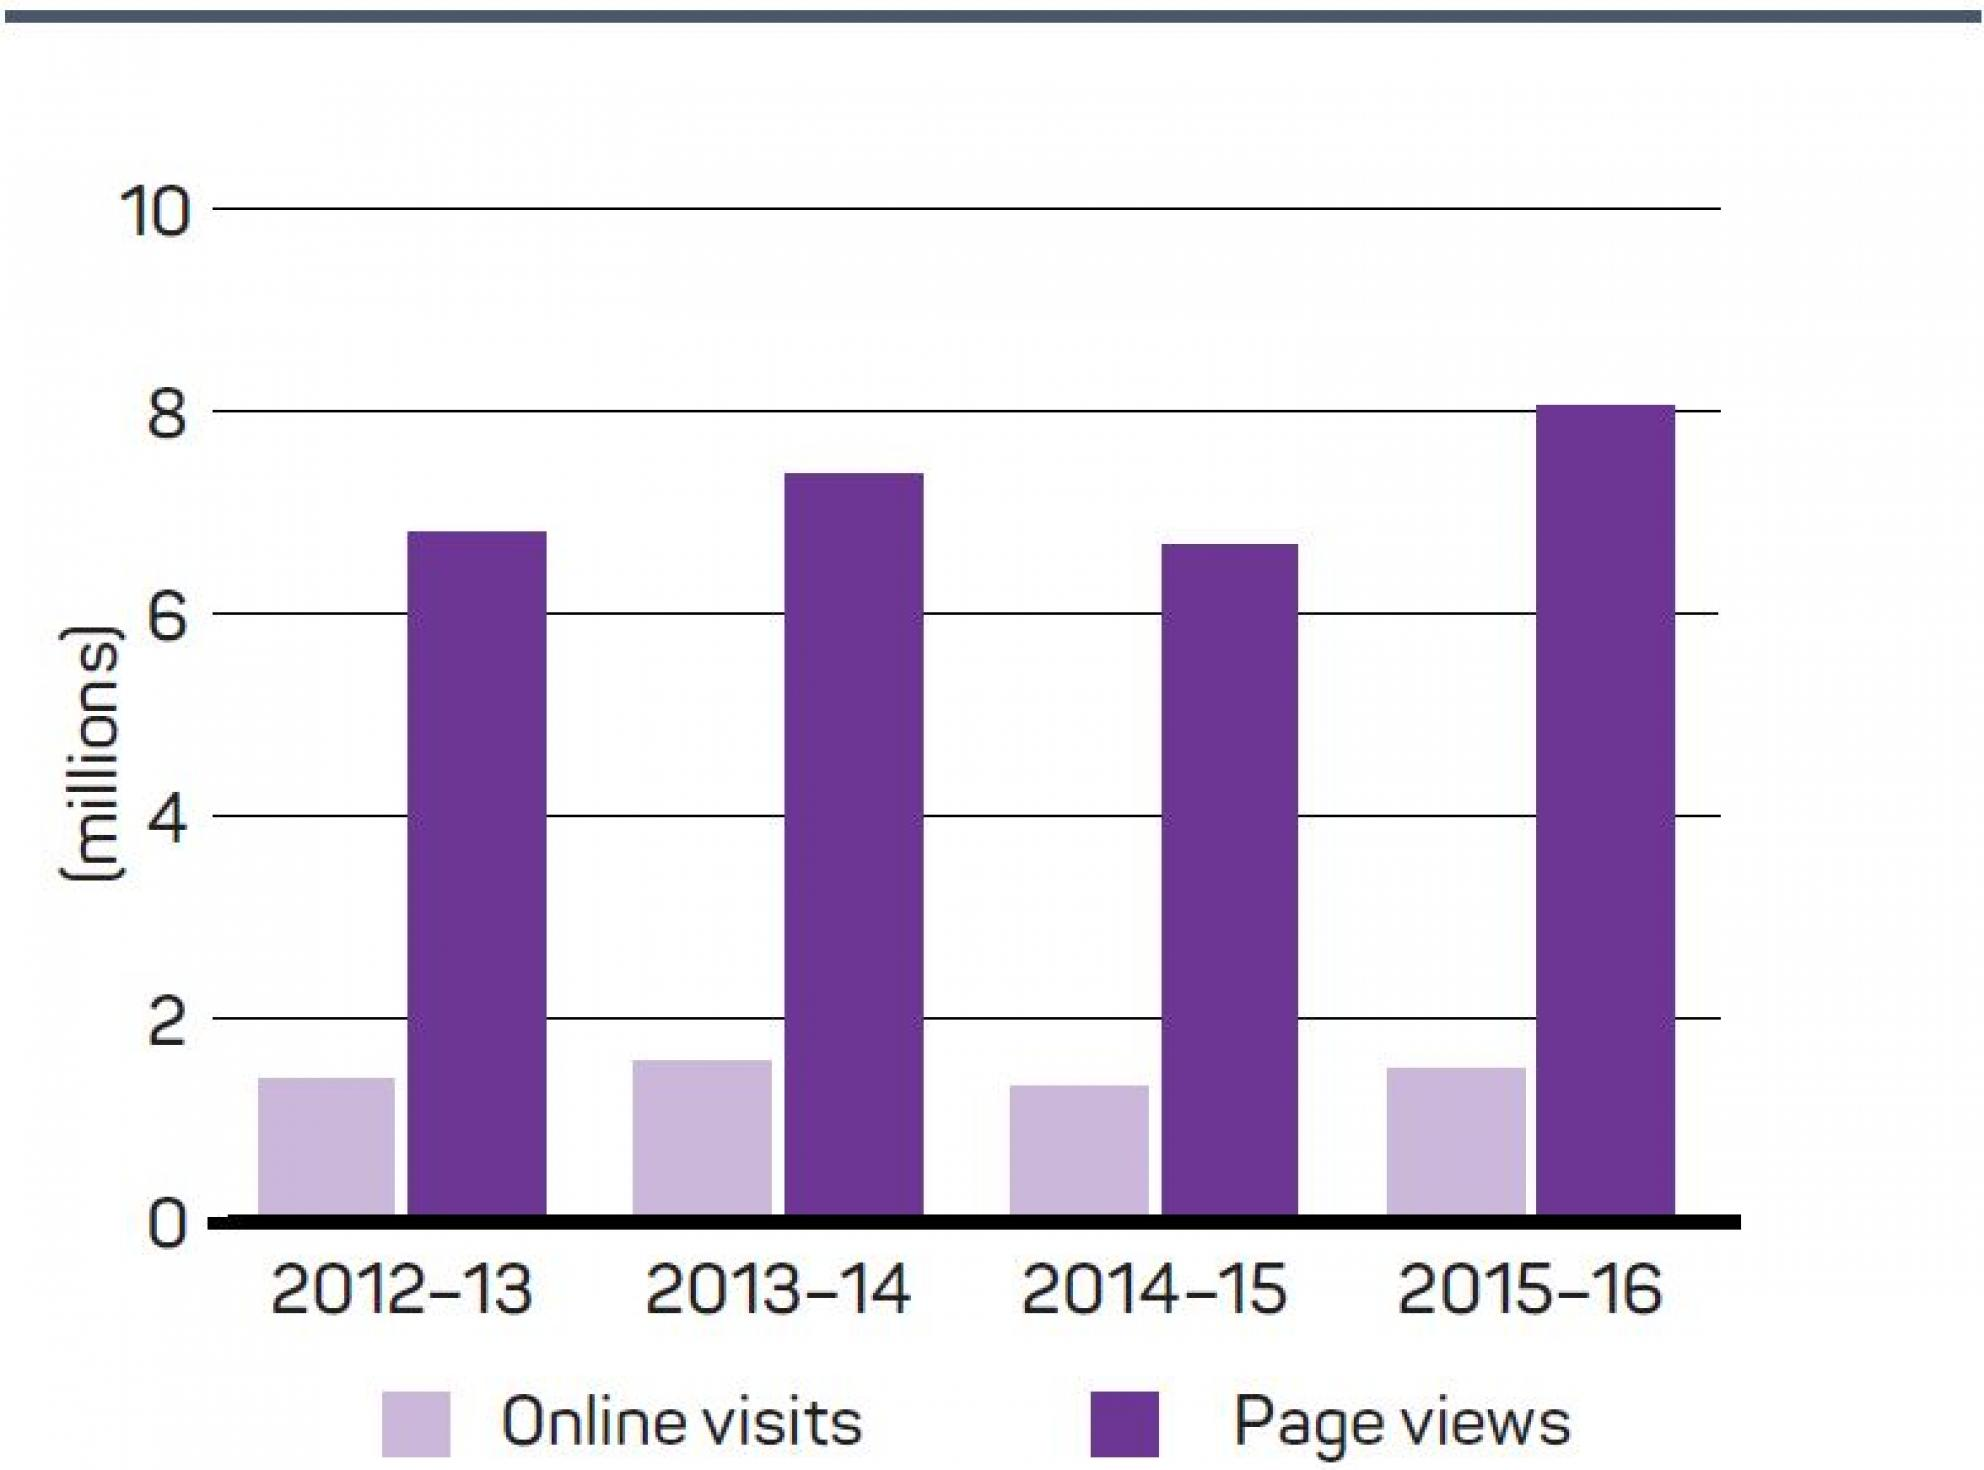 Figure 6: Number of online visits, 2012–13 to 2015–16